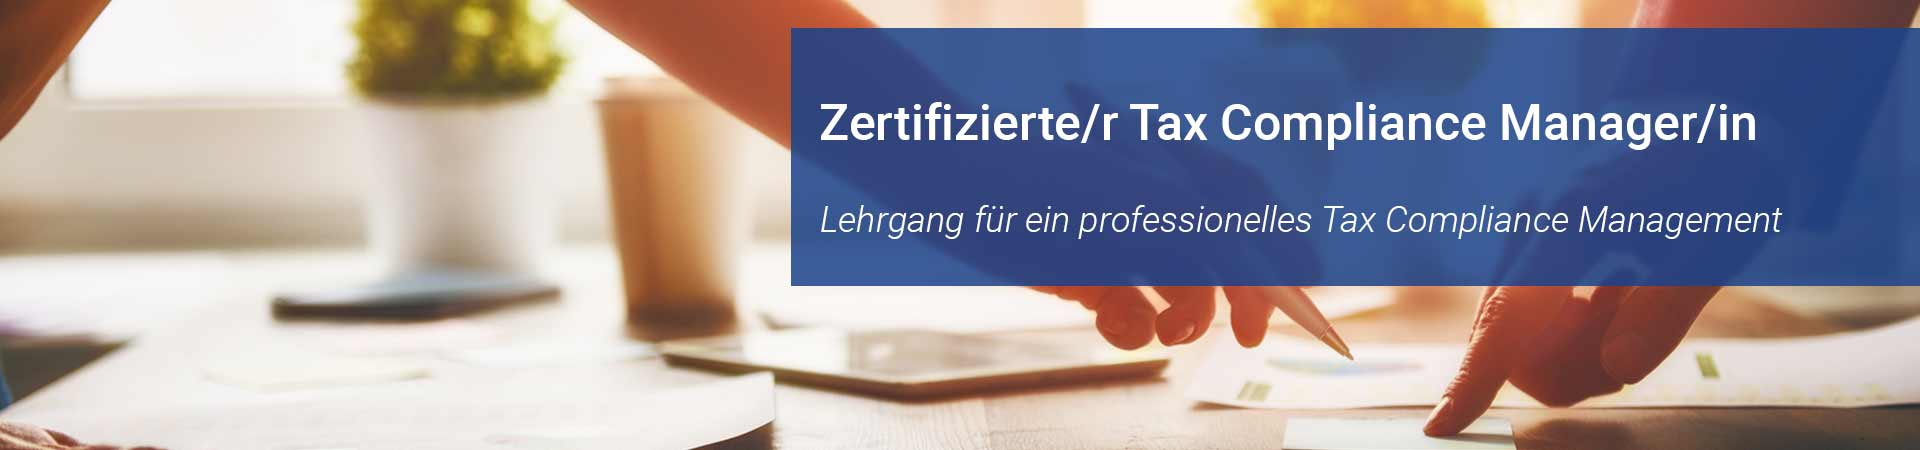 Zertifizierte/r Tax Compliance Manager